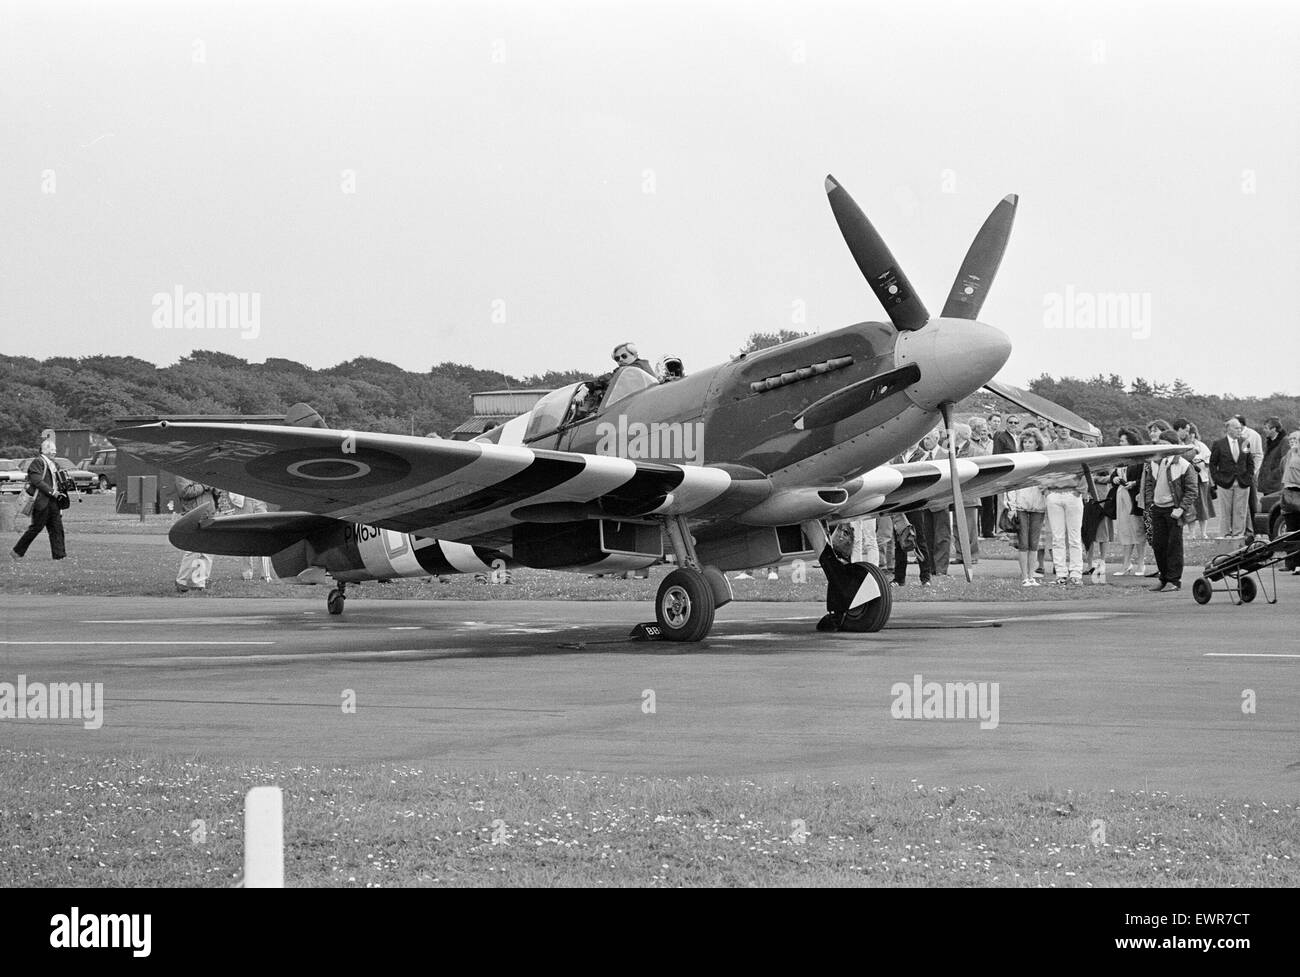 Spitfire single seat fighter aircraft on show at RAF Woodvale, South of Southport, Merseyside, 10th June 1987. Spitfire - Stock Image